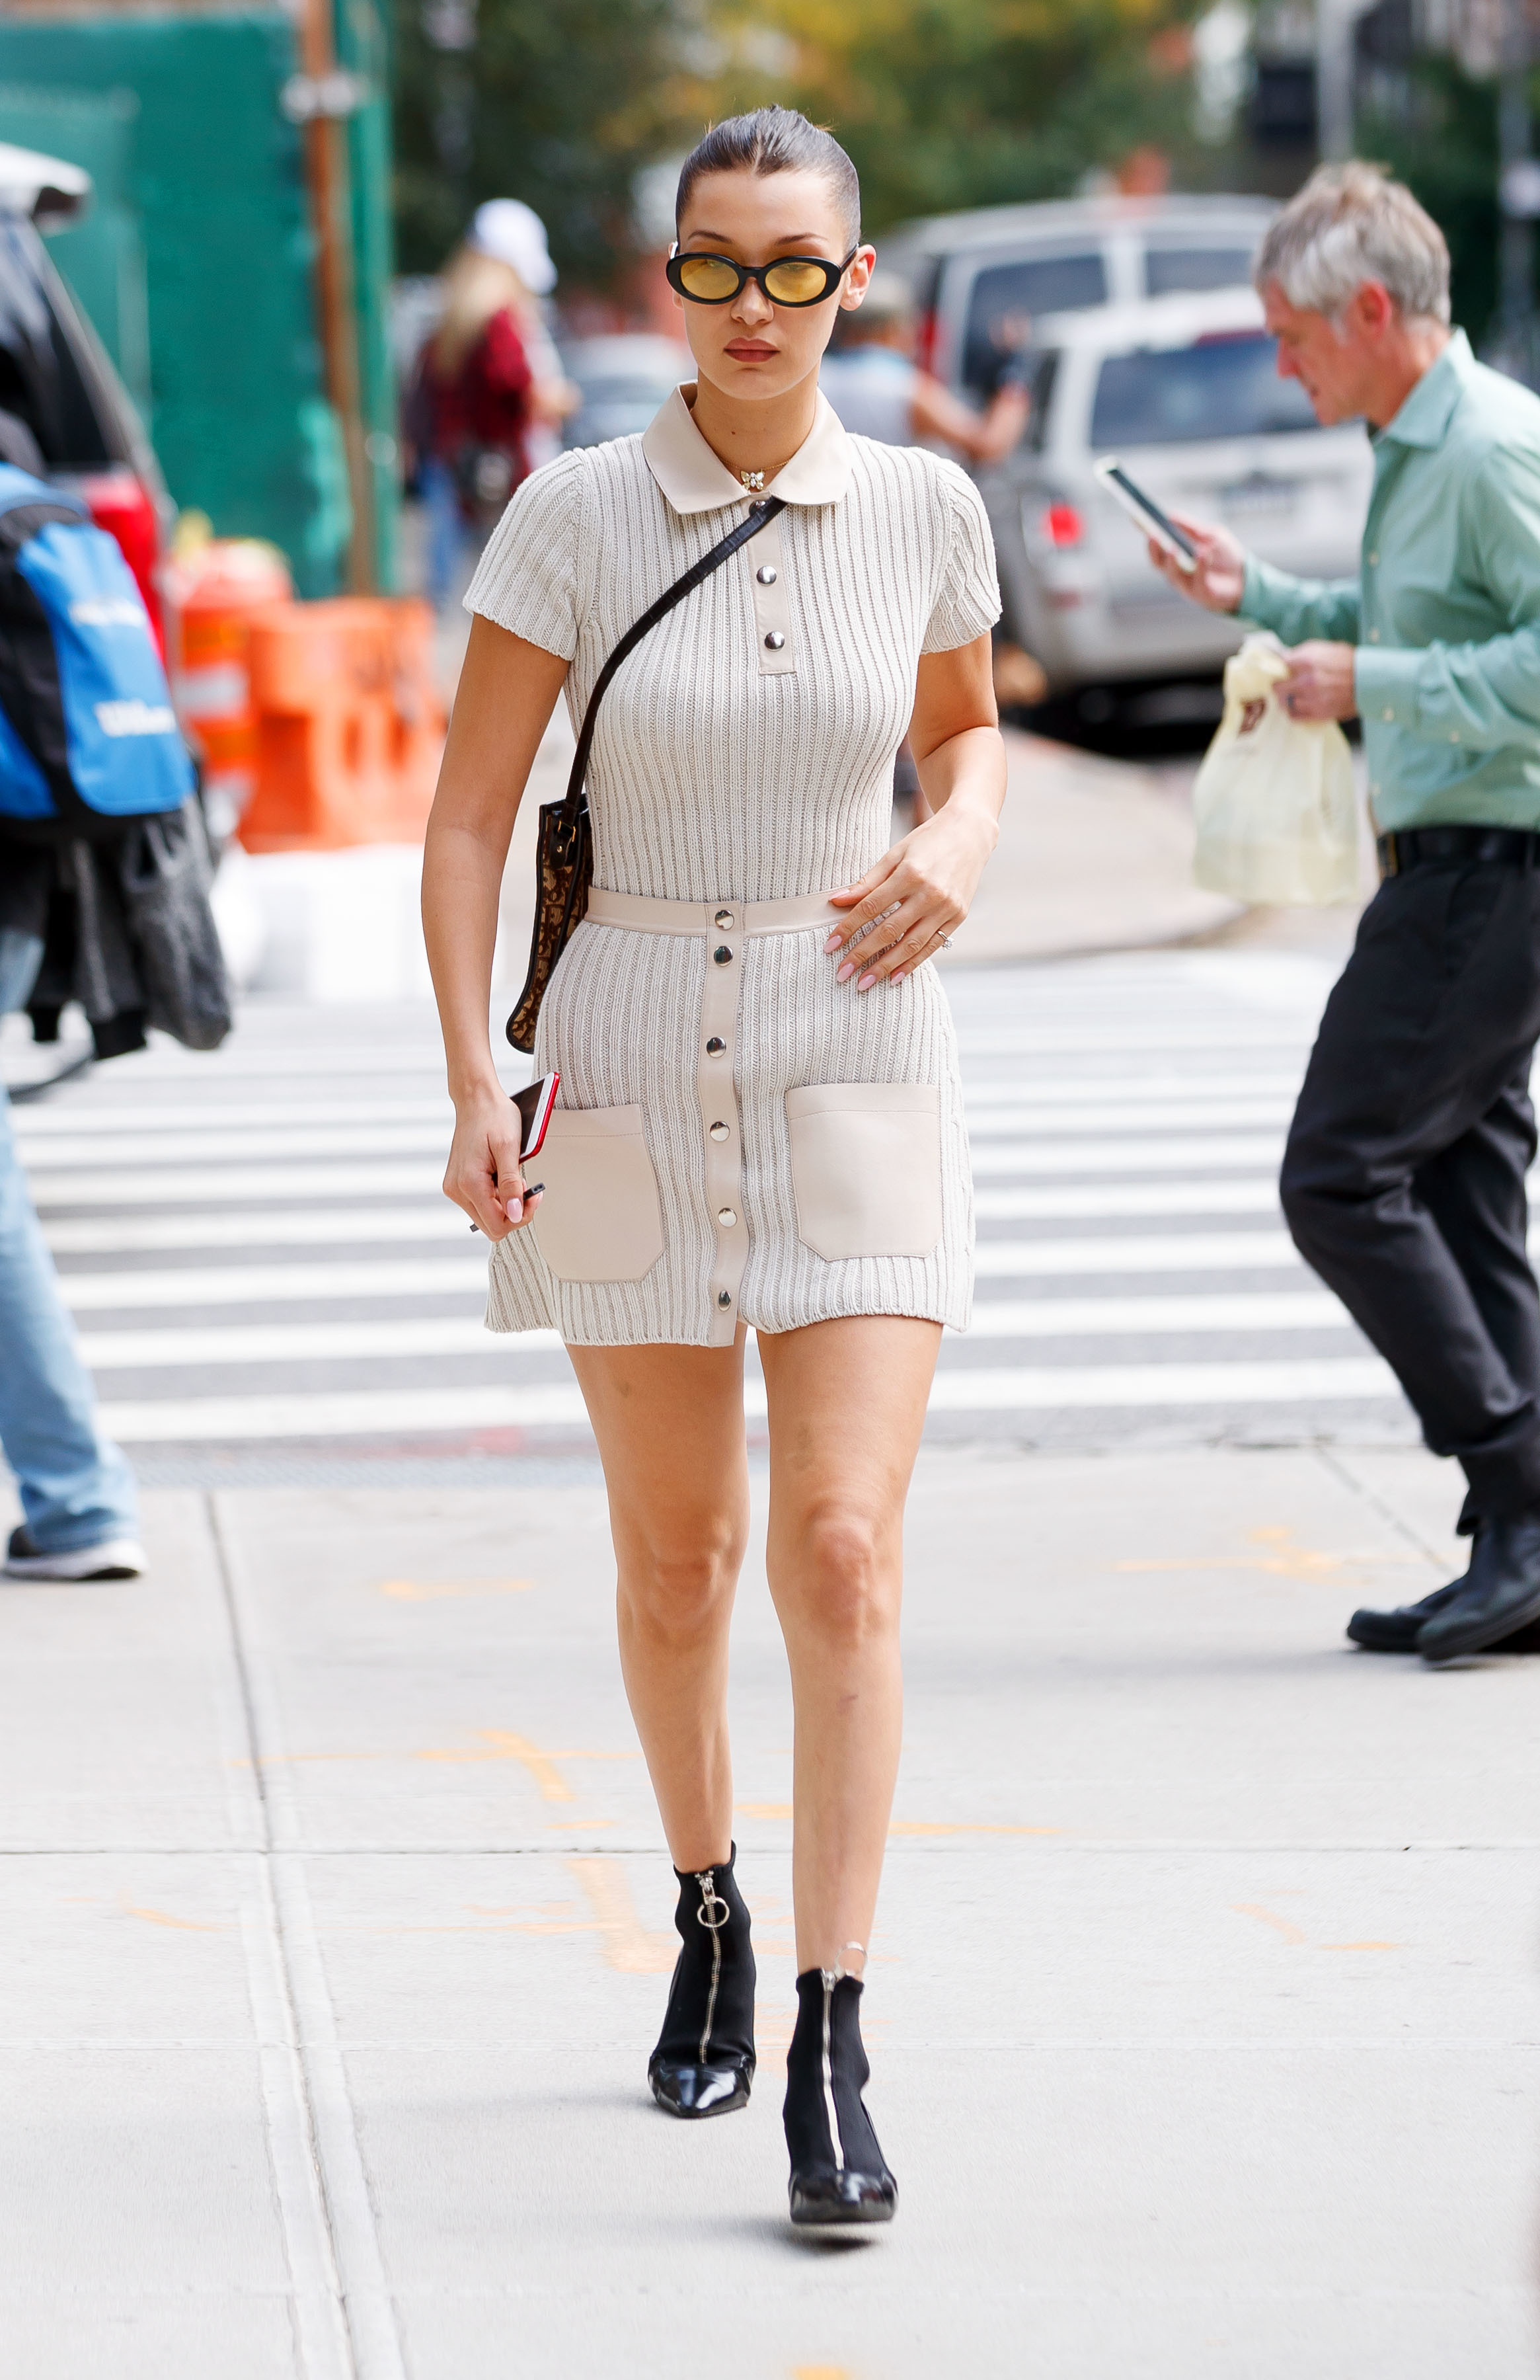 Bella Hadid steps out in New York City on Oct. 11, 2017.